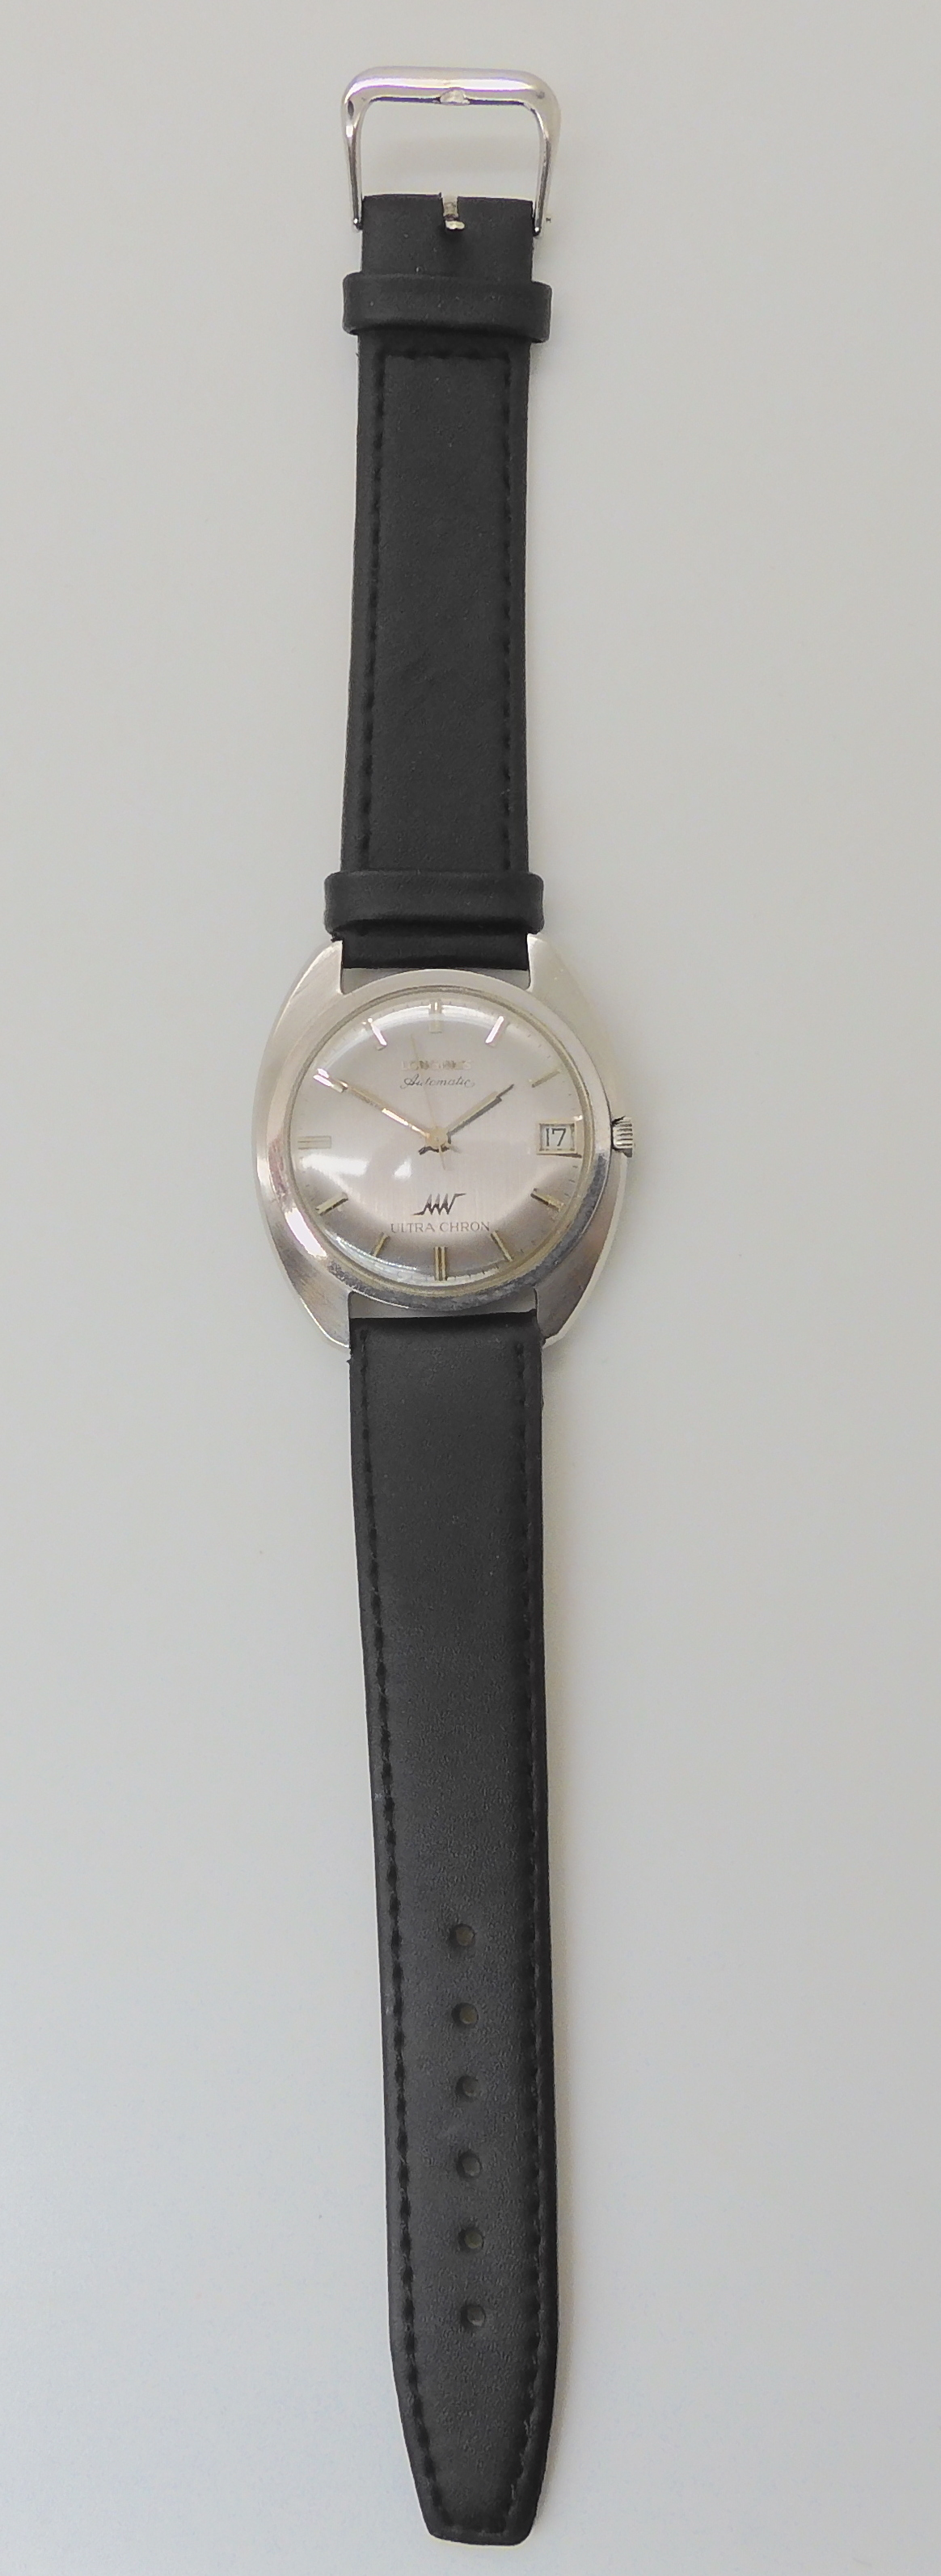 A GENTS LONGINES AUTOMATIC ULTRA CHRON with brushed silvered dial silver coloured numerals, hands - Image 3 of 4